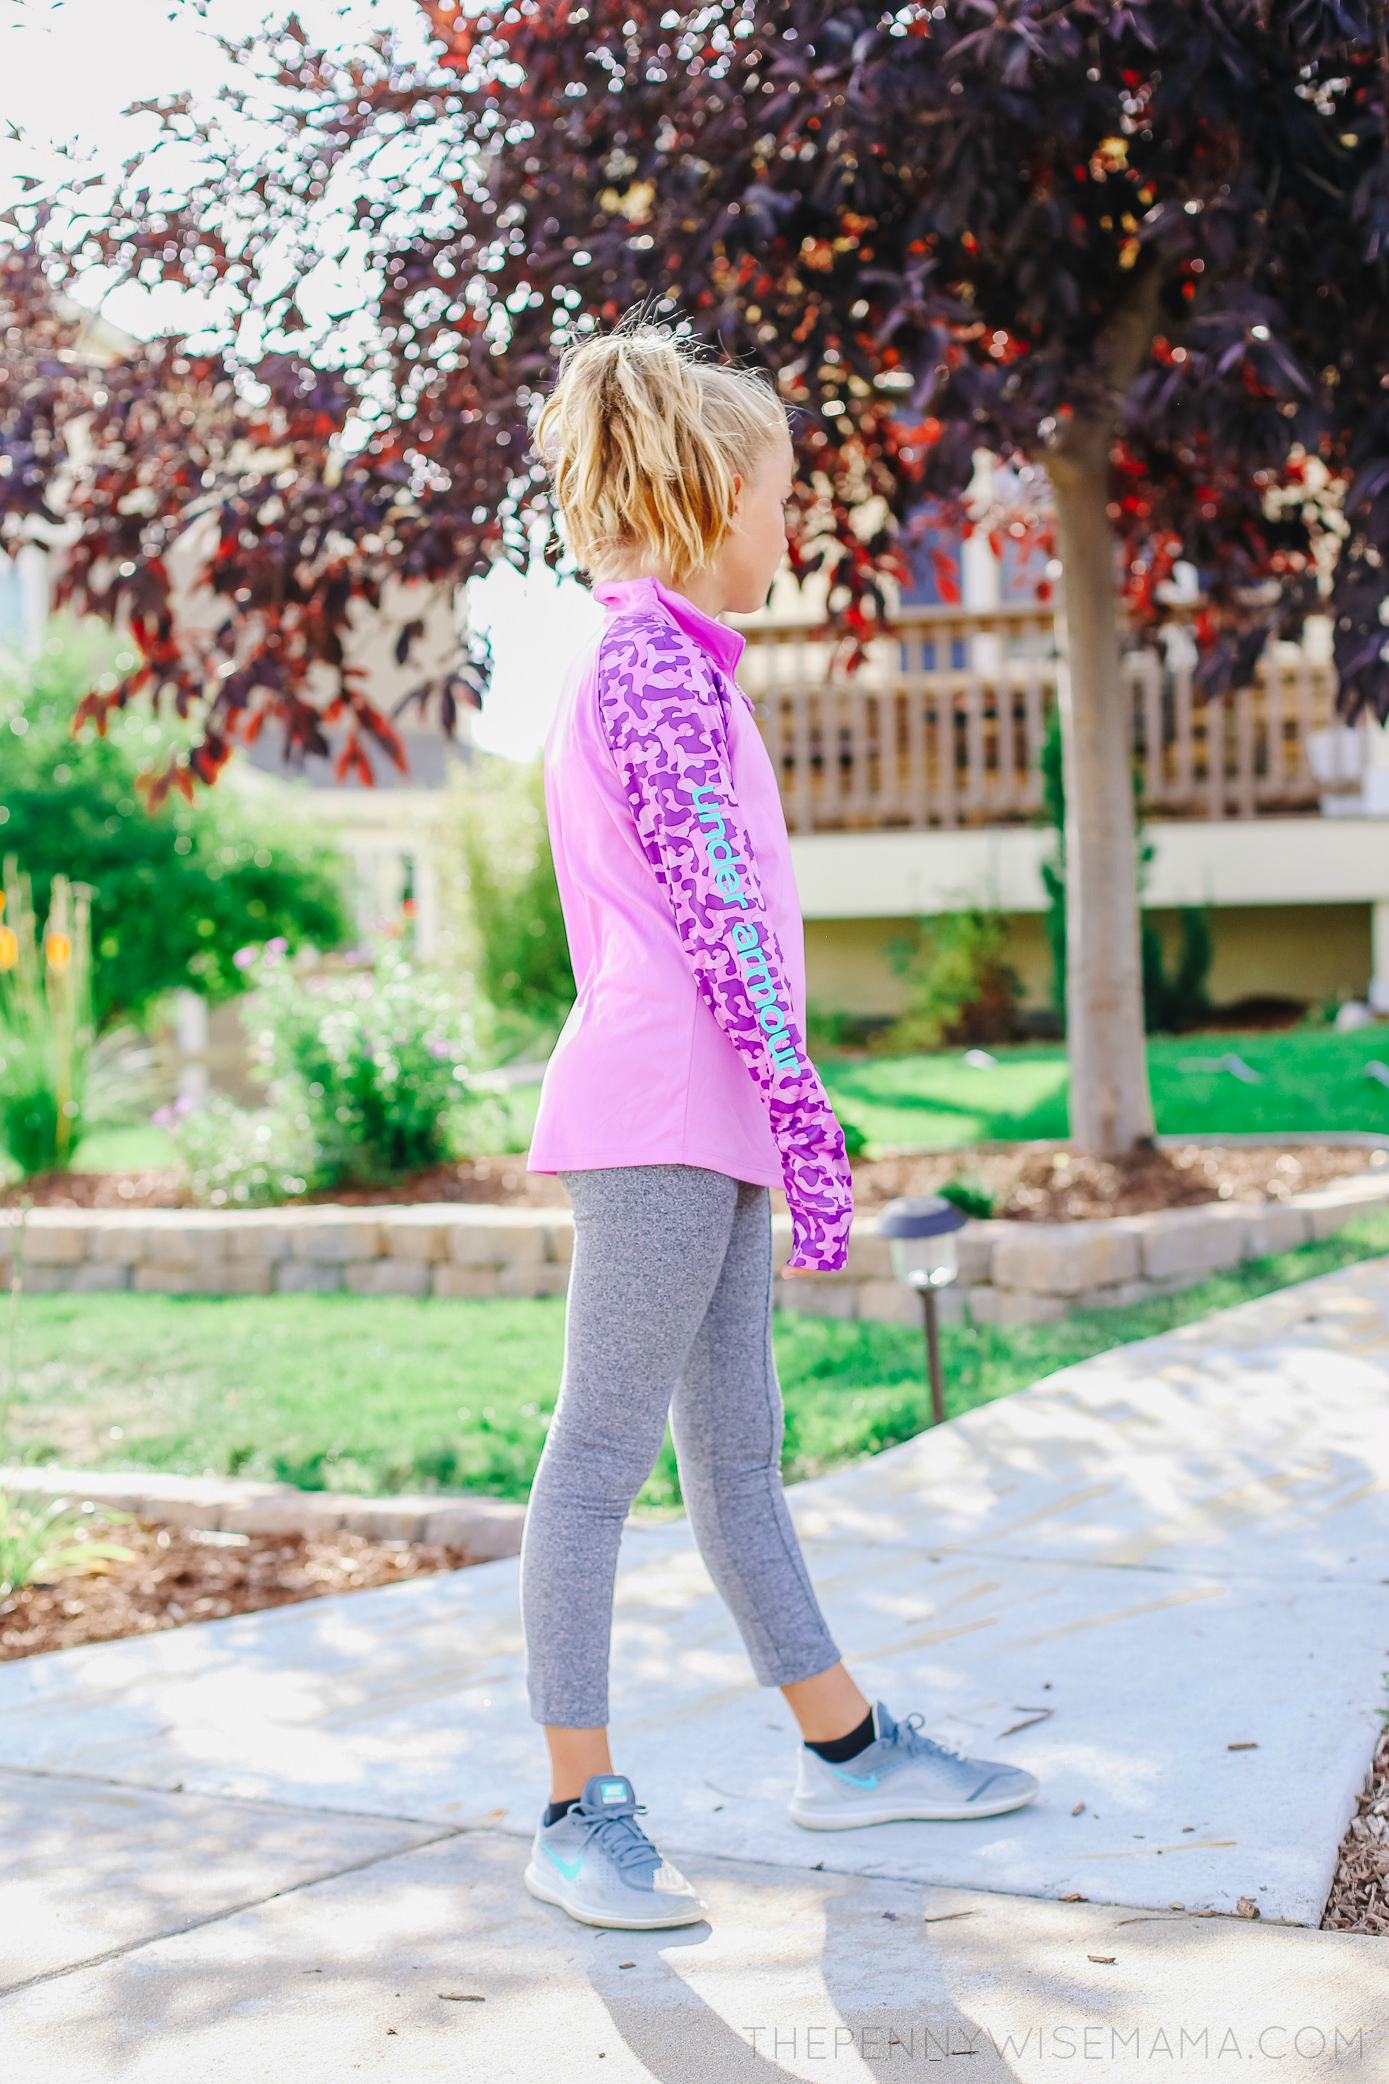 Girls athletic clothes from Kids on 45th